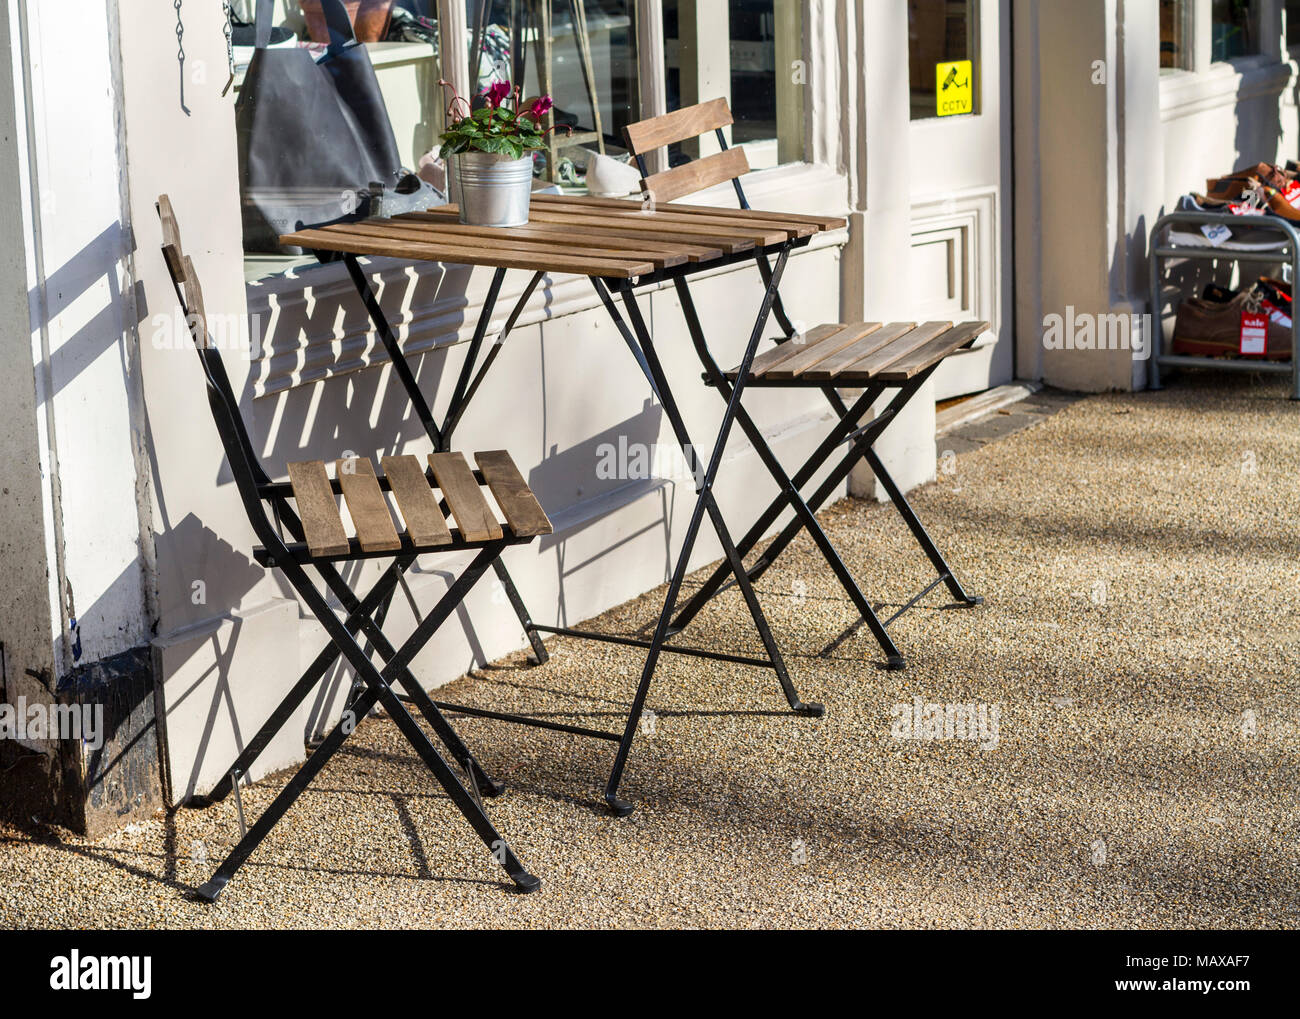 Empty Wooden Table And Chairs Outside A Coffee Shop On A Bright Sunny Day London Uk Stock Photo Alamy